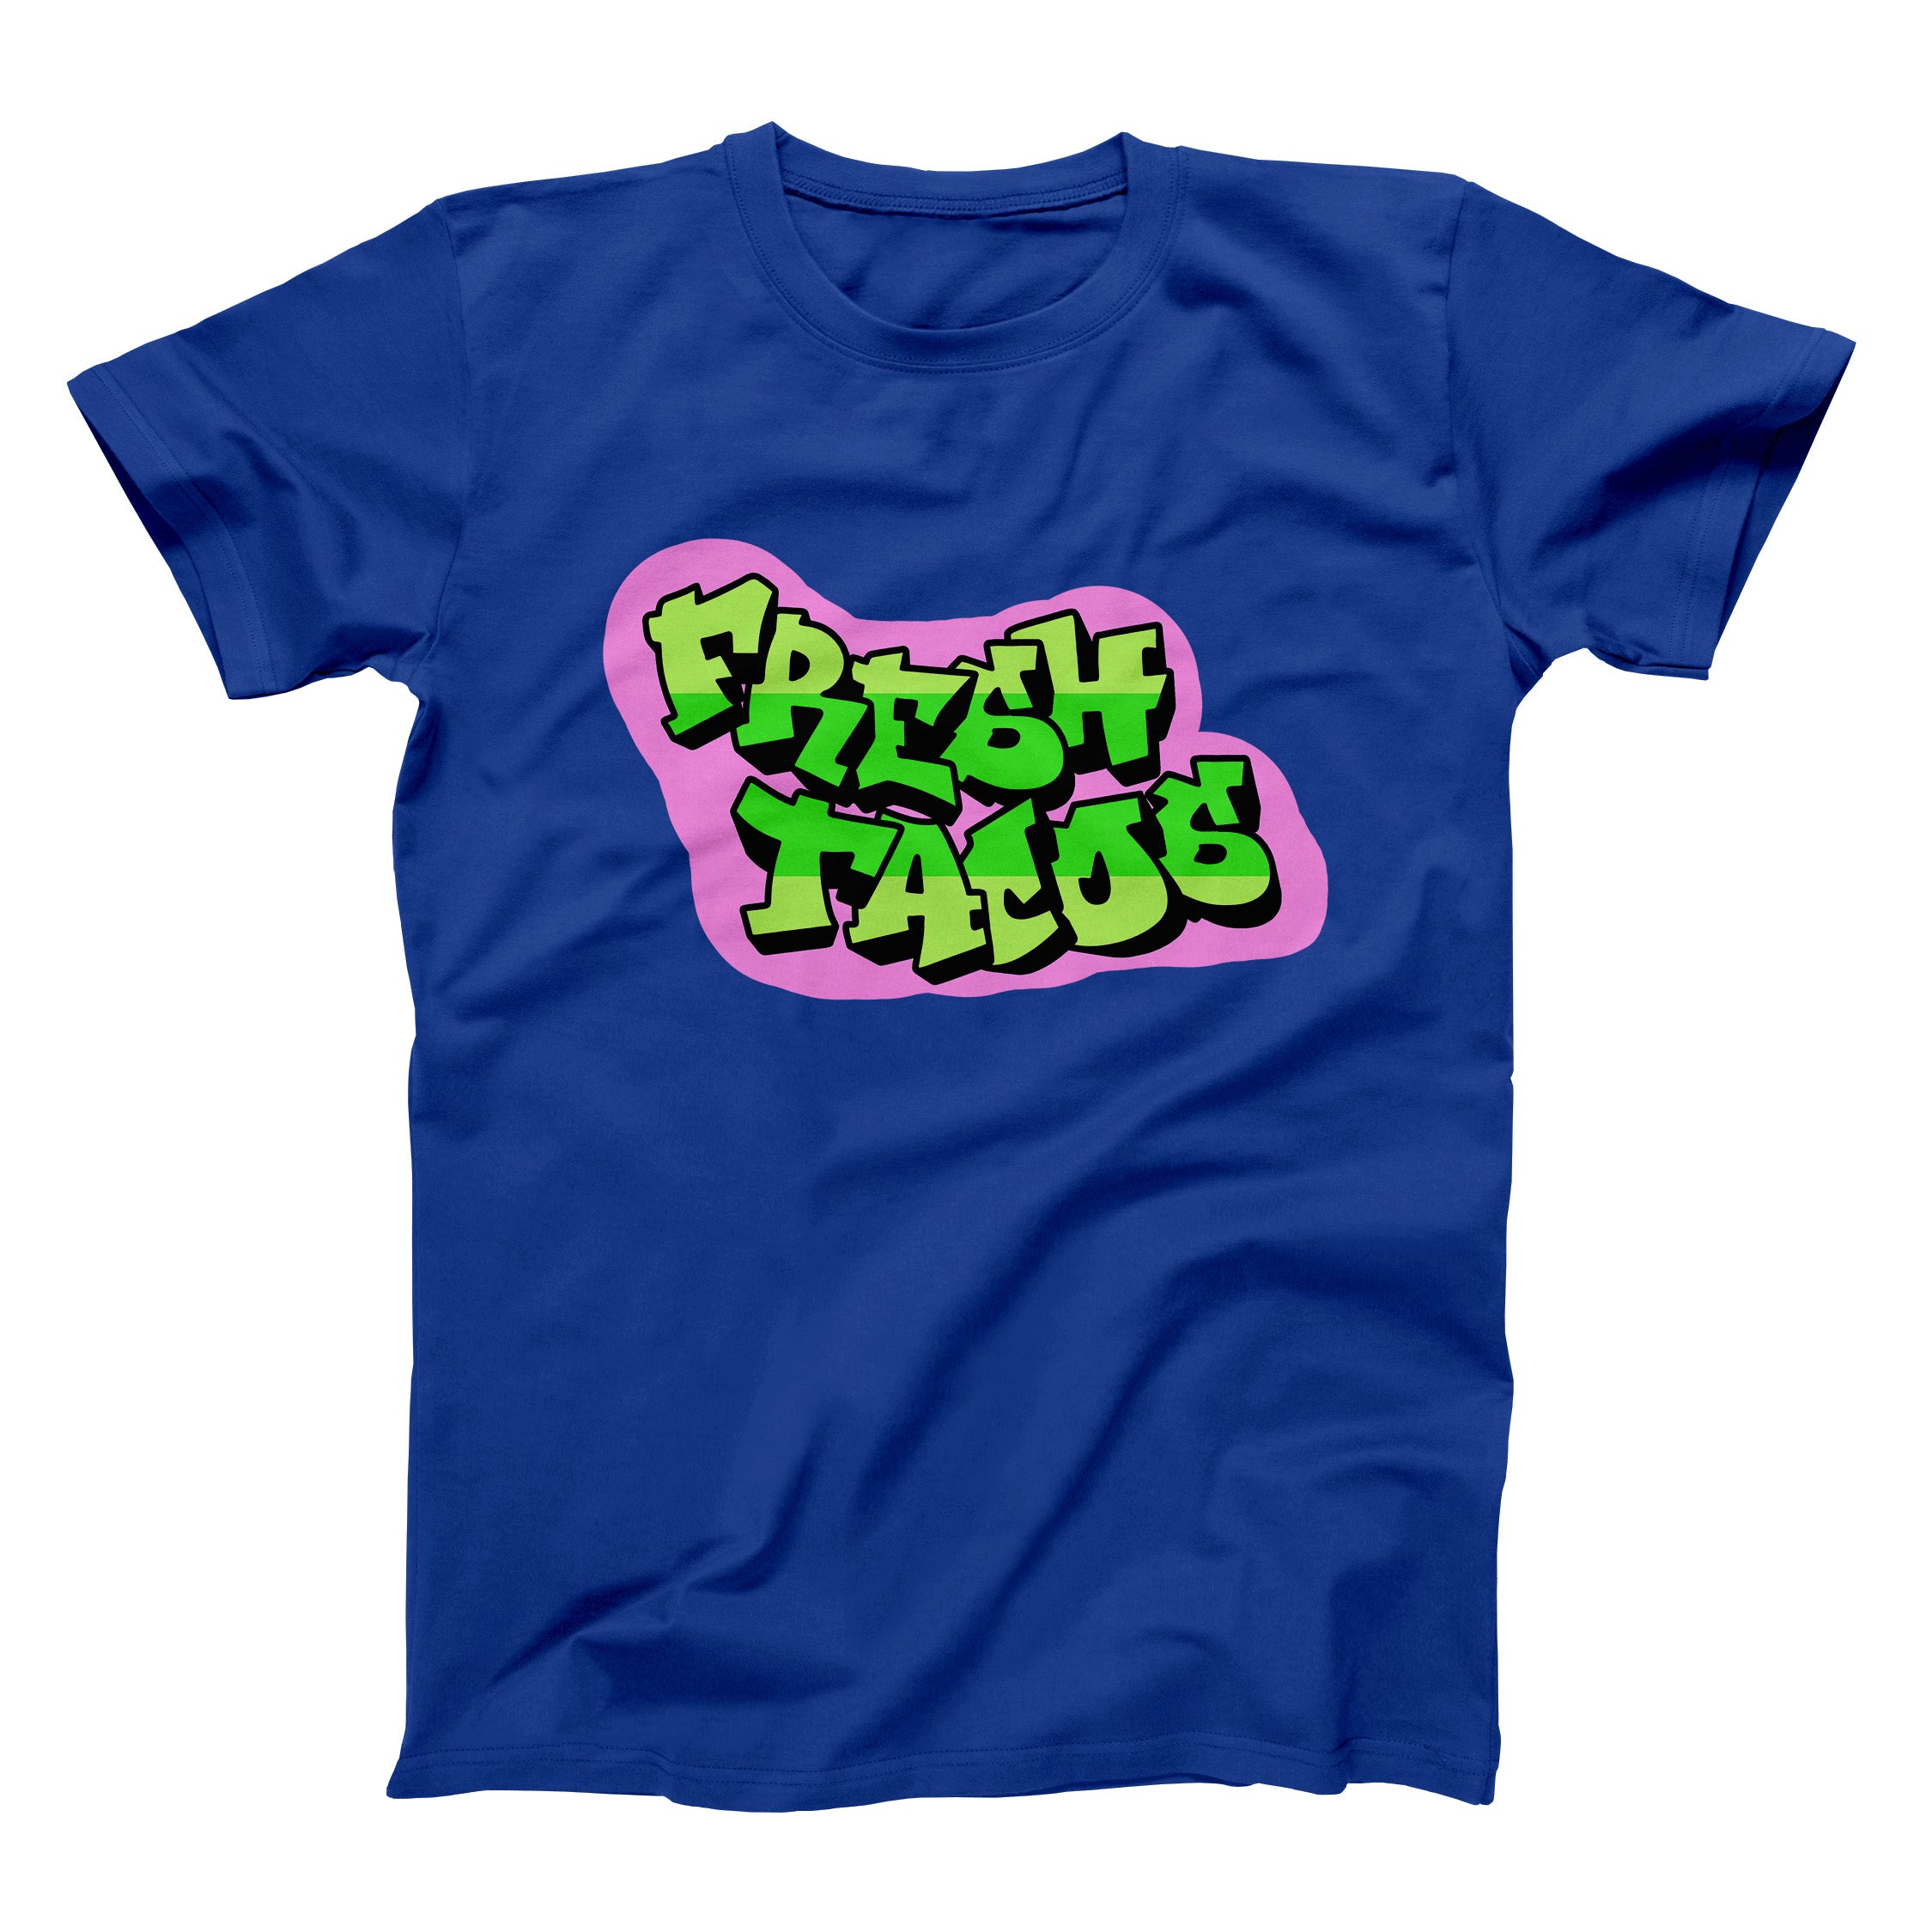 Fresh Tacos Shirt - Taco Gear